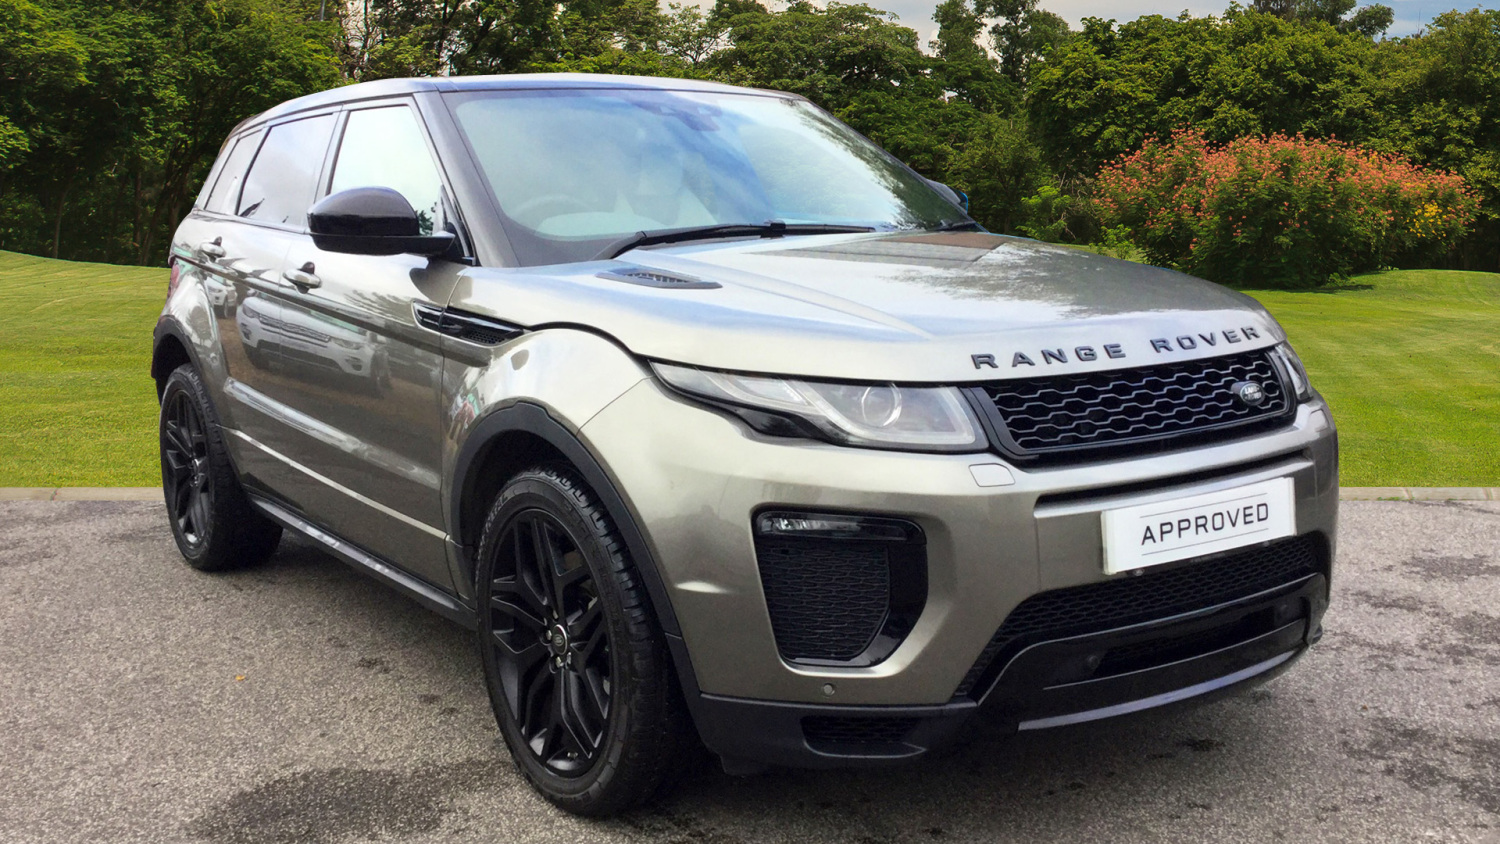 used land rover range rover evoque 2 0 sd4 hse dynamic 5dr auto diesel hatchback for sale. Black Bedroom Furniture Sets. Home Design Ideas